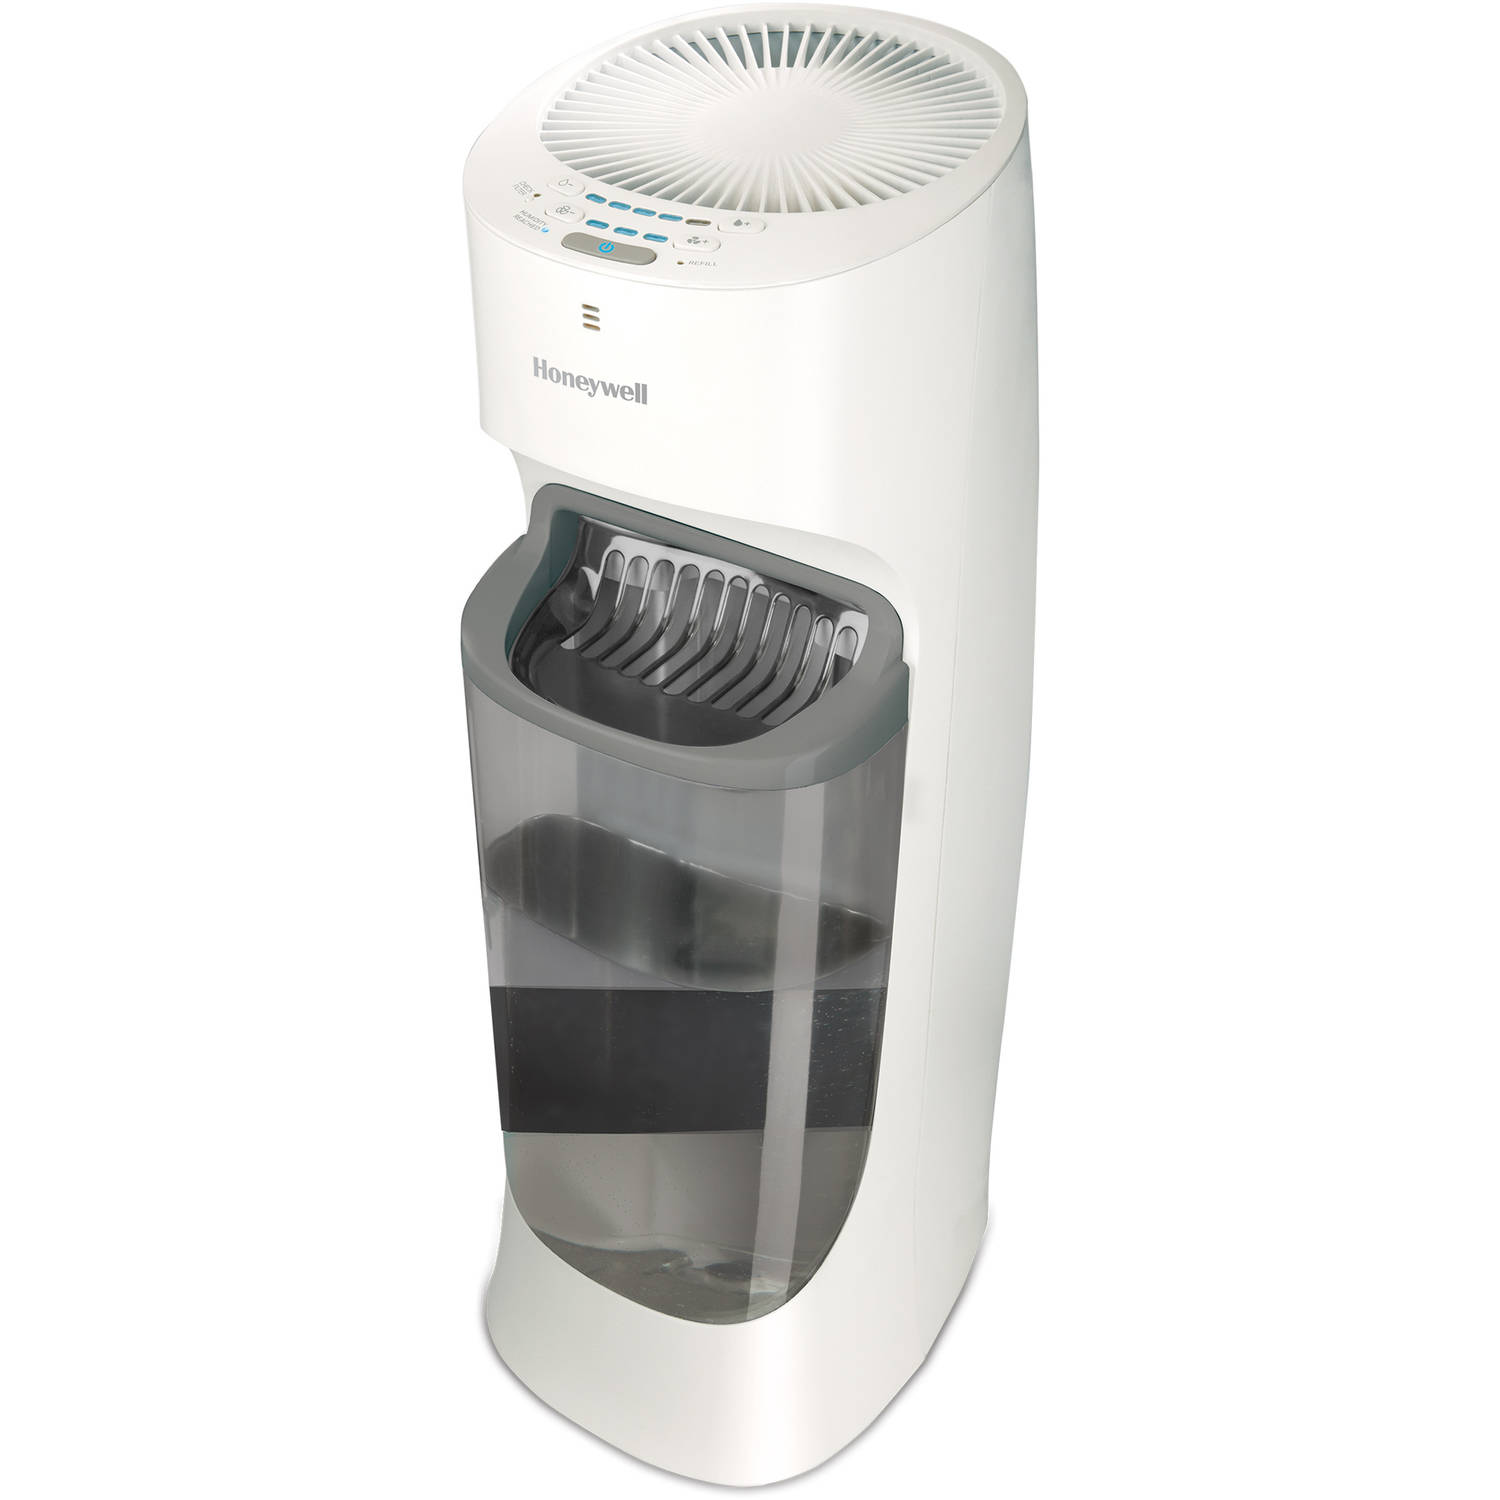 Honeywell Top Fill Tower Humidifier with Humidistat White, HEV615W